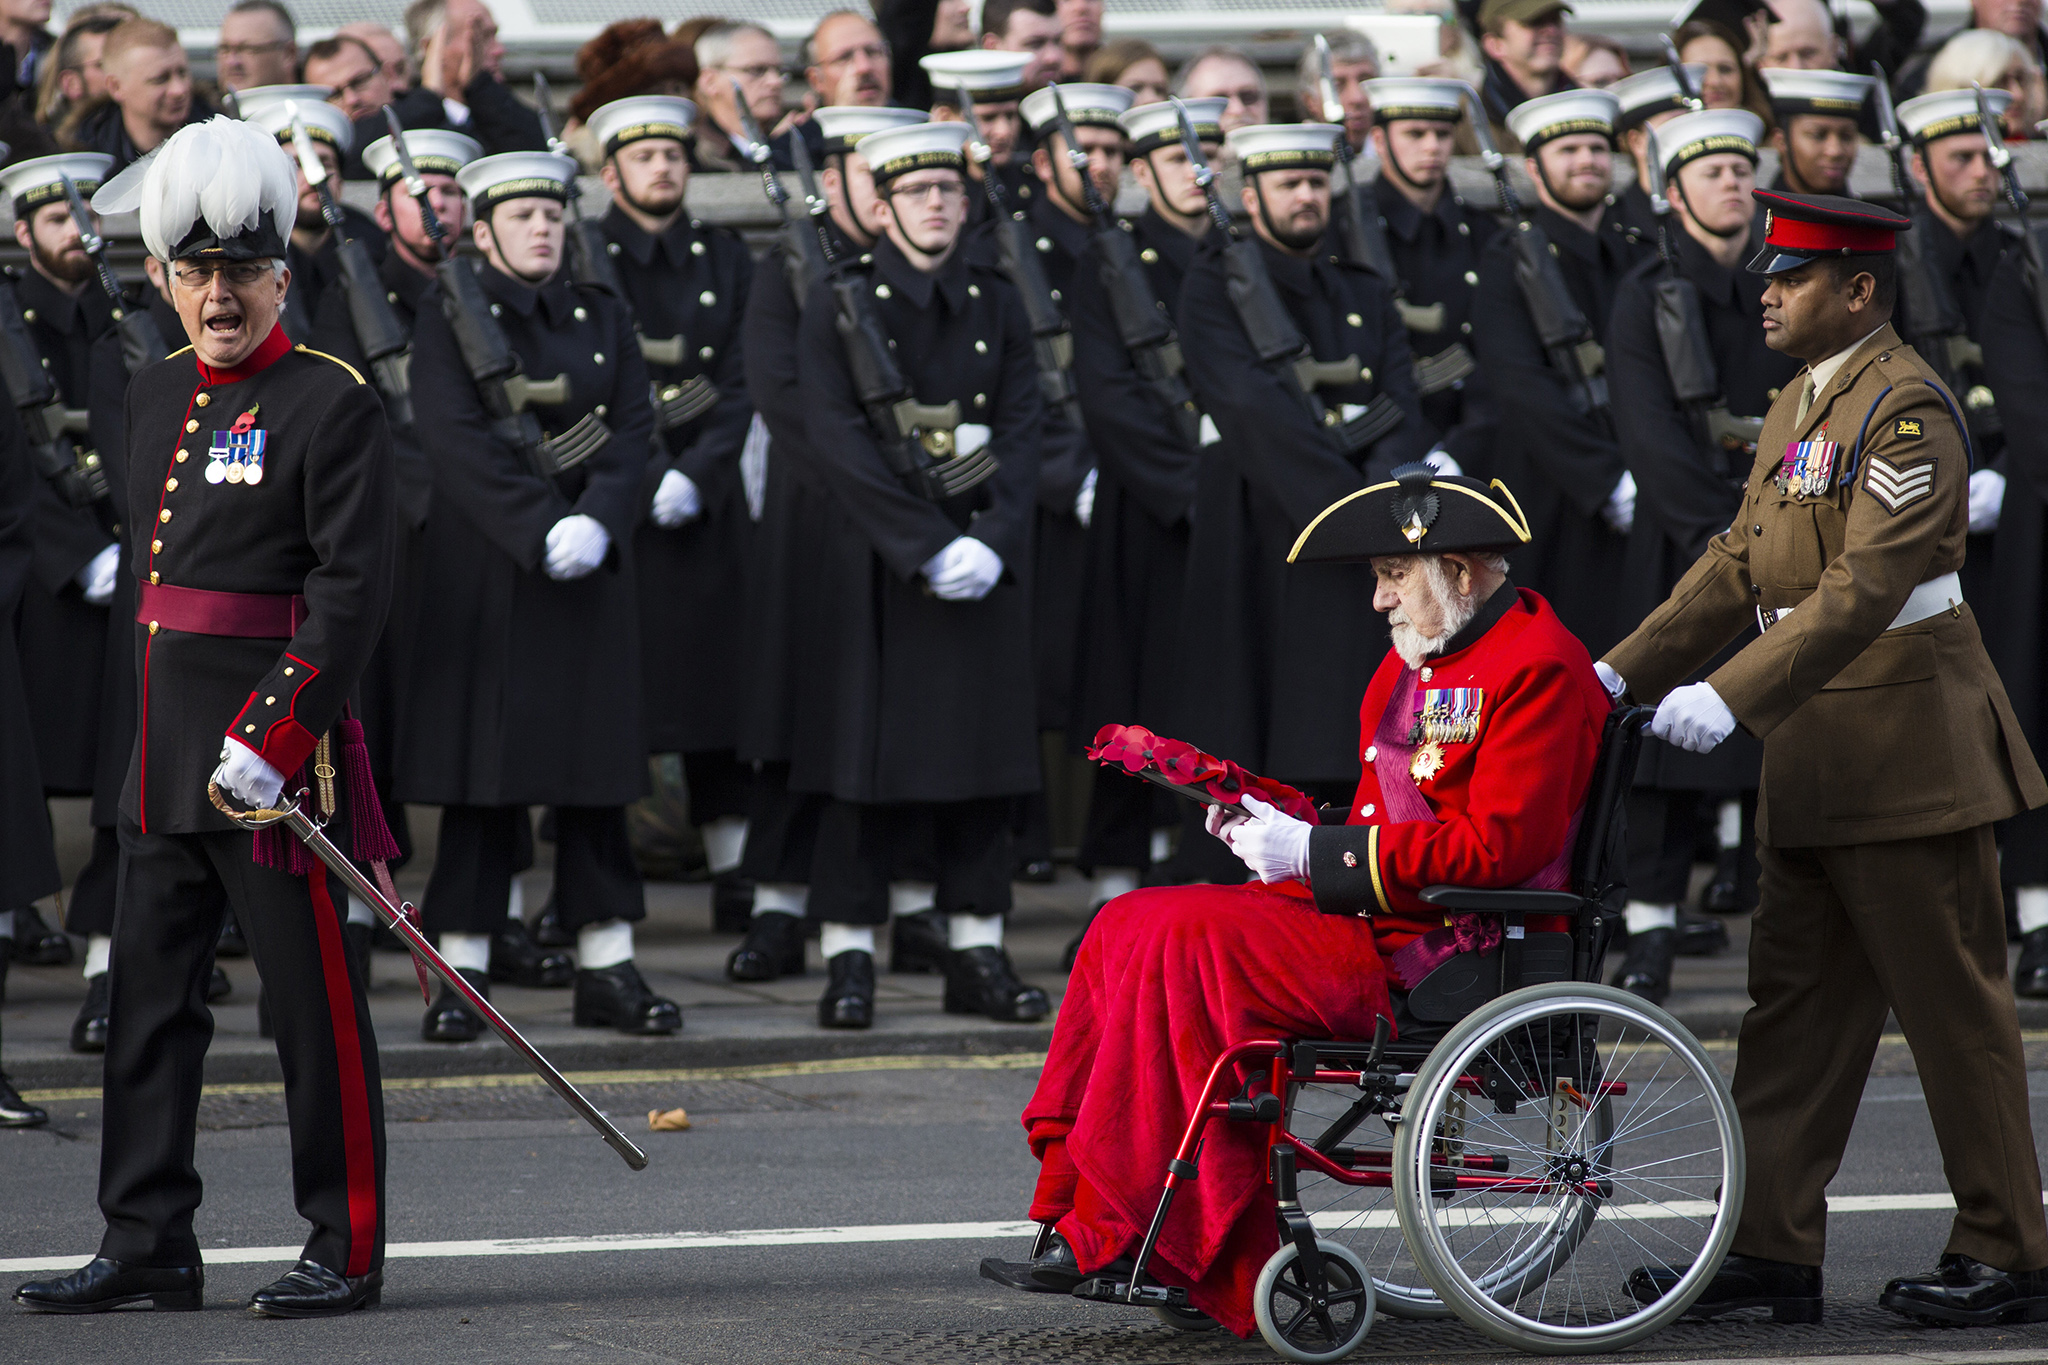 Victoria Cross holders Bill Speakman, (2nd R) and Johnson Beharry (R) parade during the annual Remembrance Sunday Service at the Cenotaph on Whitehall on November 13, 2016 in London, England. The Queen, senior politicians, including the British Prime Minister and representatives from the armed forces pay tribute to those who have suffered or died at war. (Photo by Jack Taylor/Getty Images)